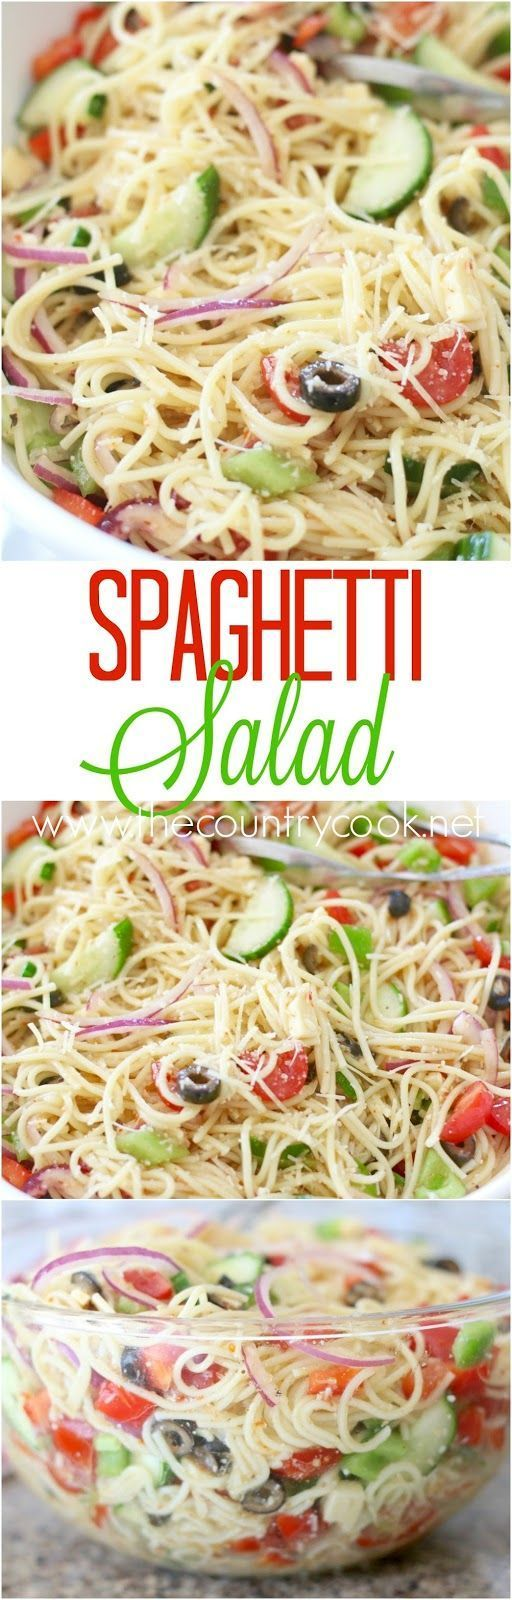 Spaghetti Salad recipe. This a tried and true recipe that has been made for…